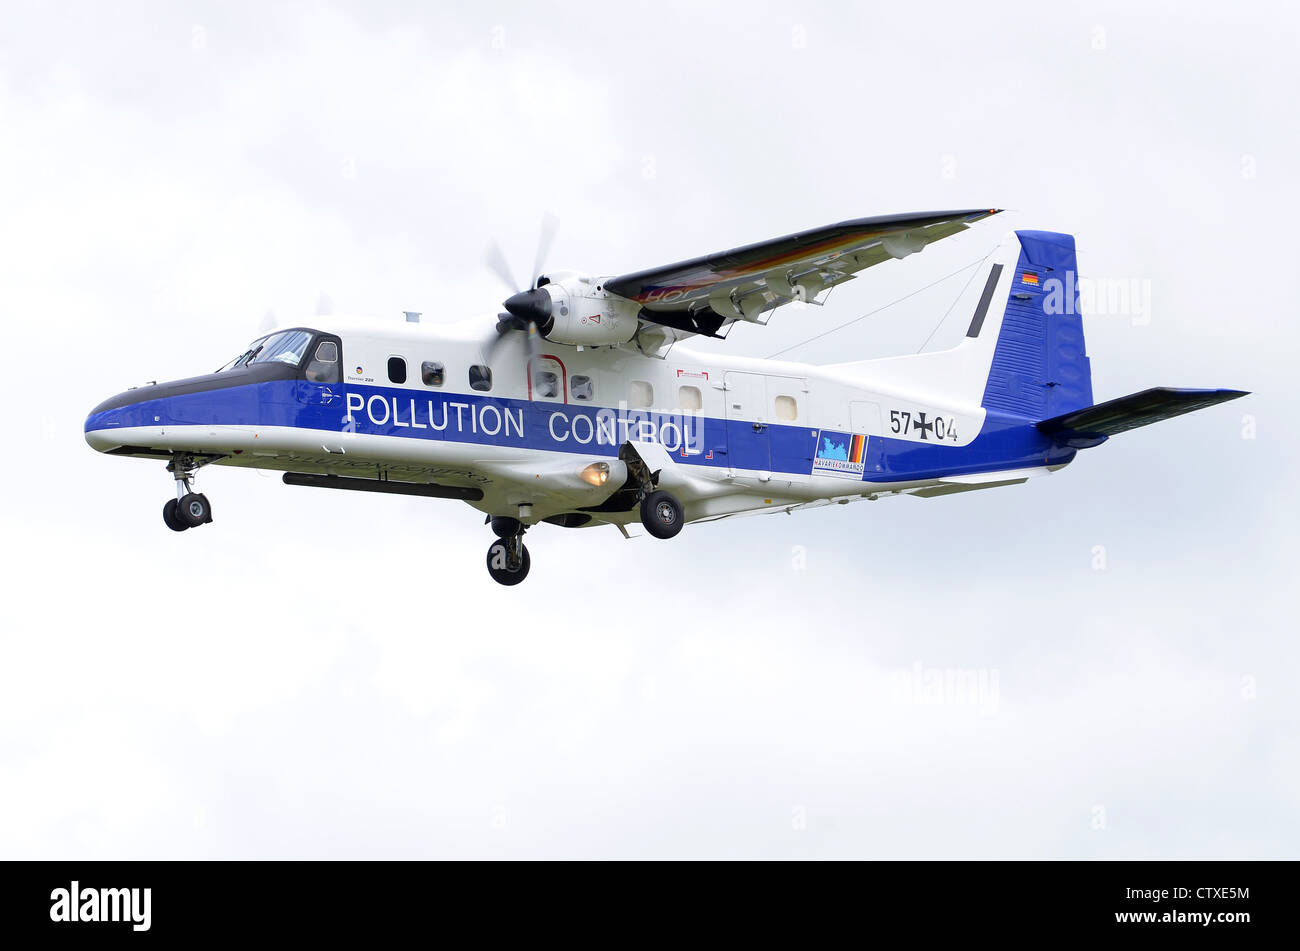 Dornier DO-228-212 pollution control aircraft operated by the German Navy on approach for landing at RAF Fairford - Stock Image